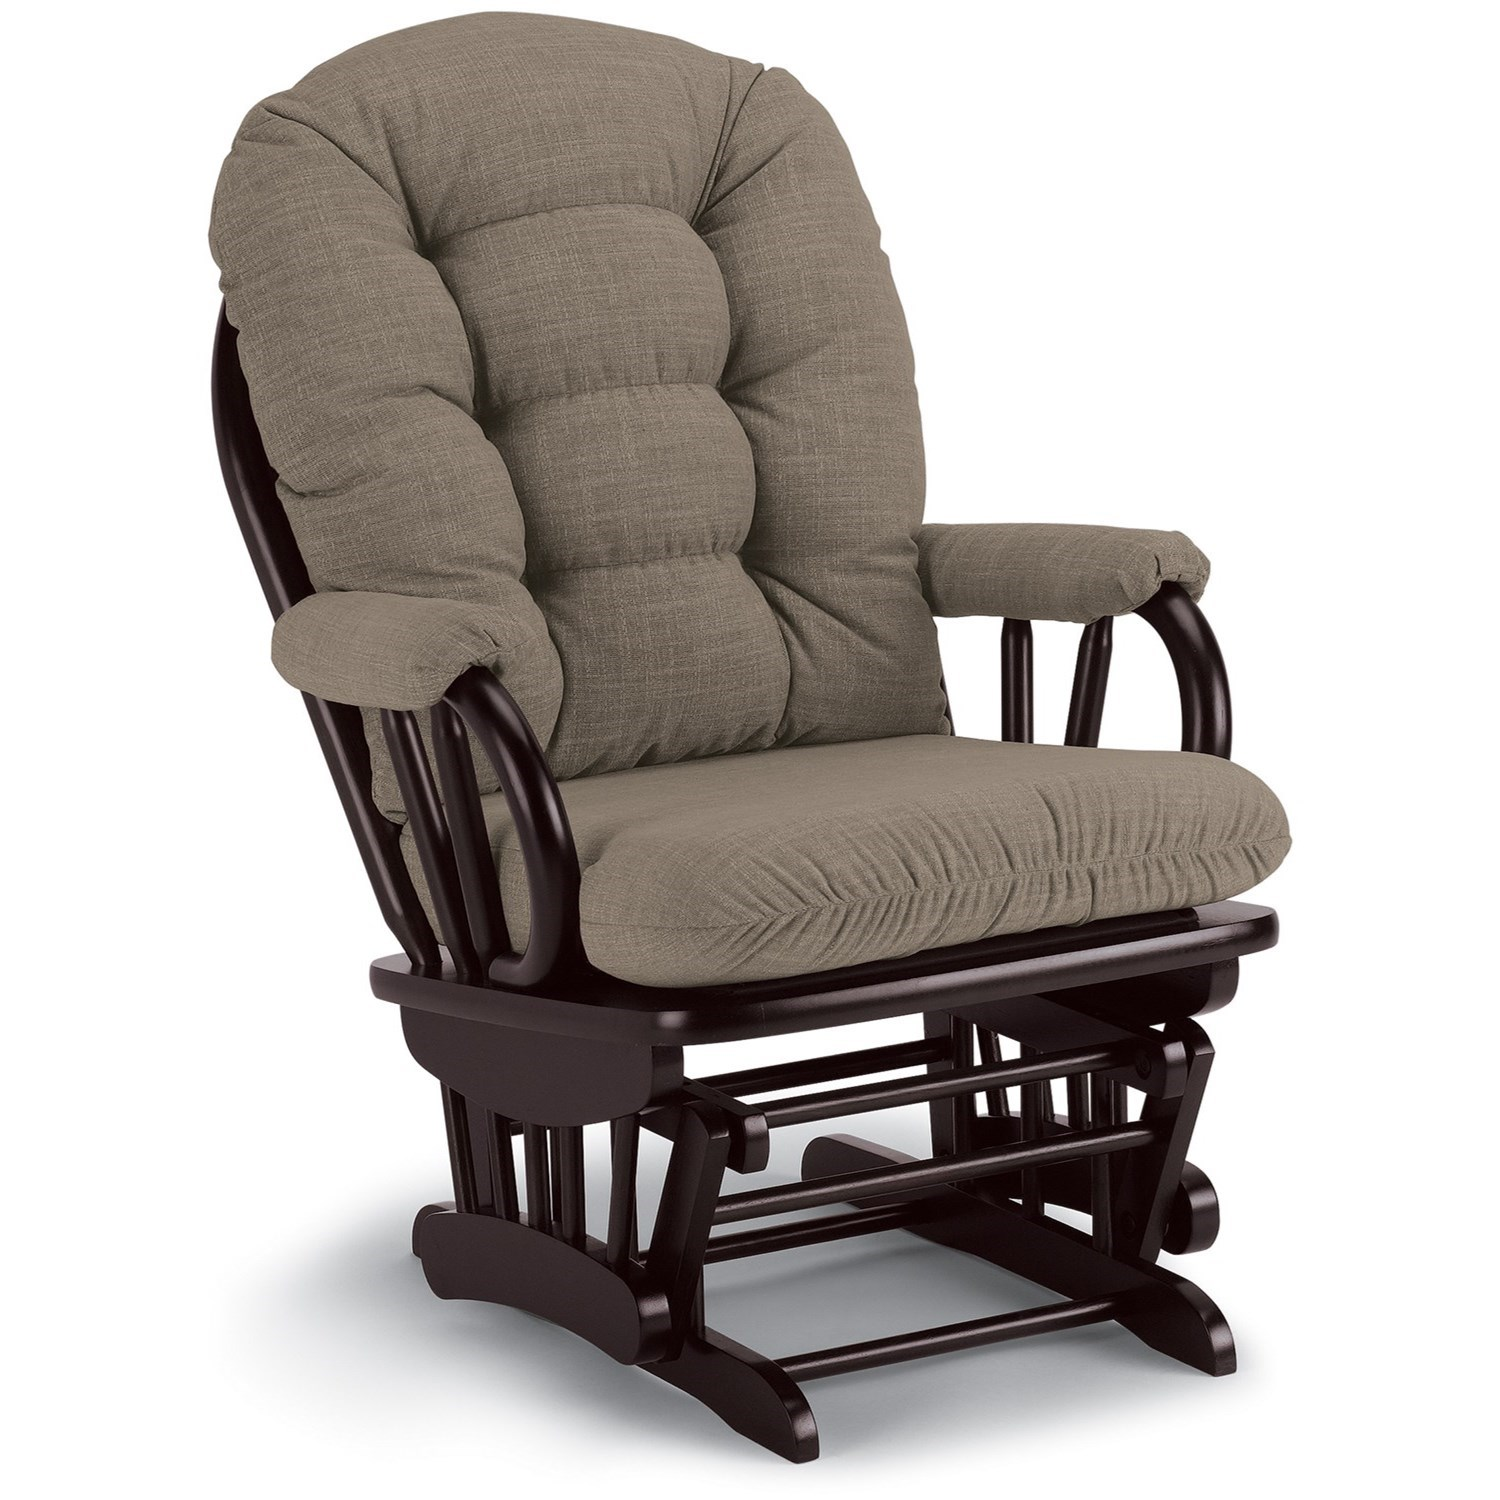 Sona Glider Rocker by Best Home Furnishings at Suburban Furniture